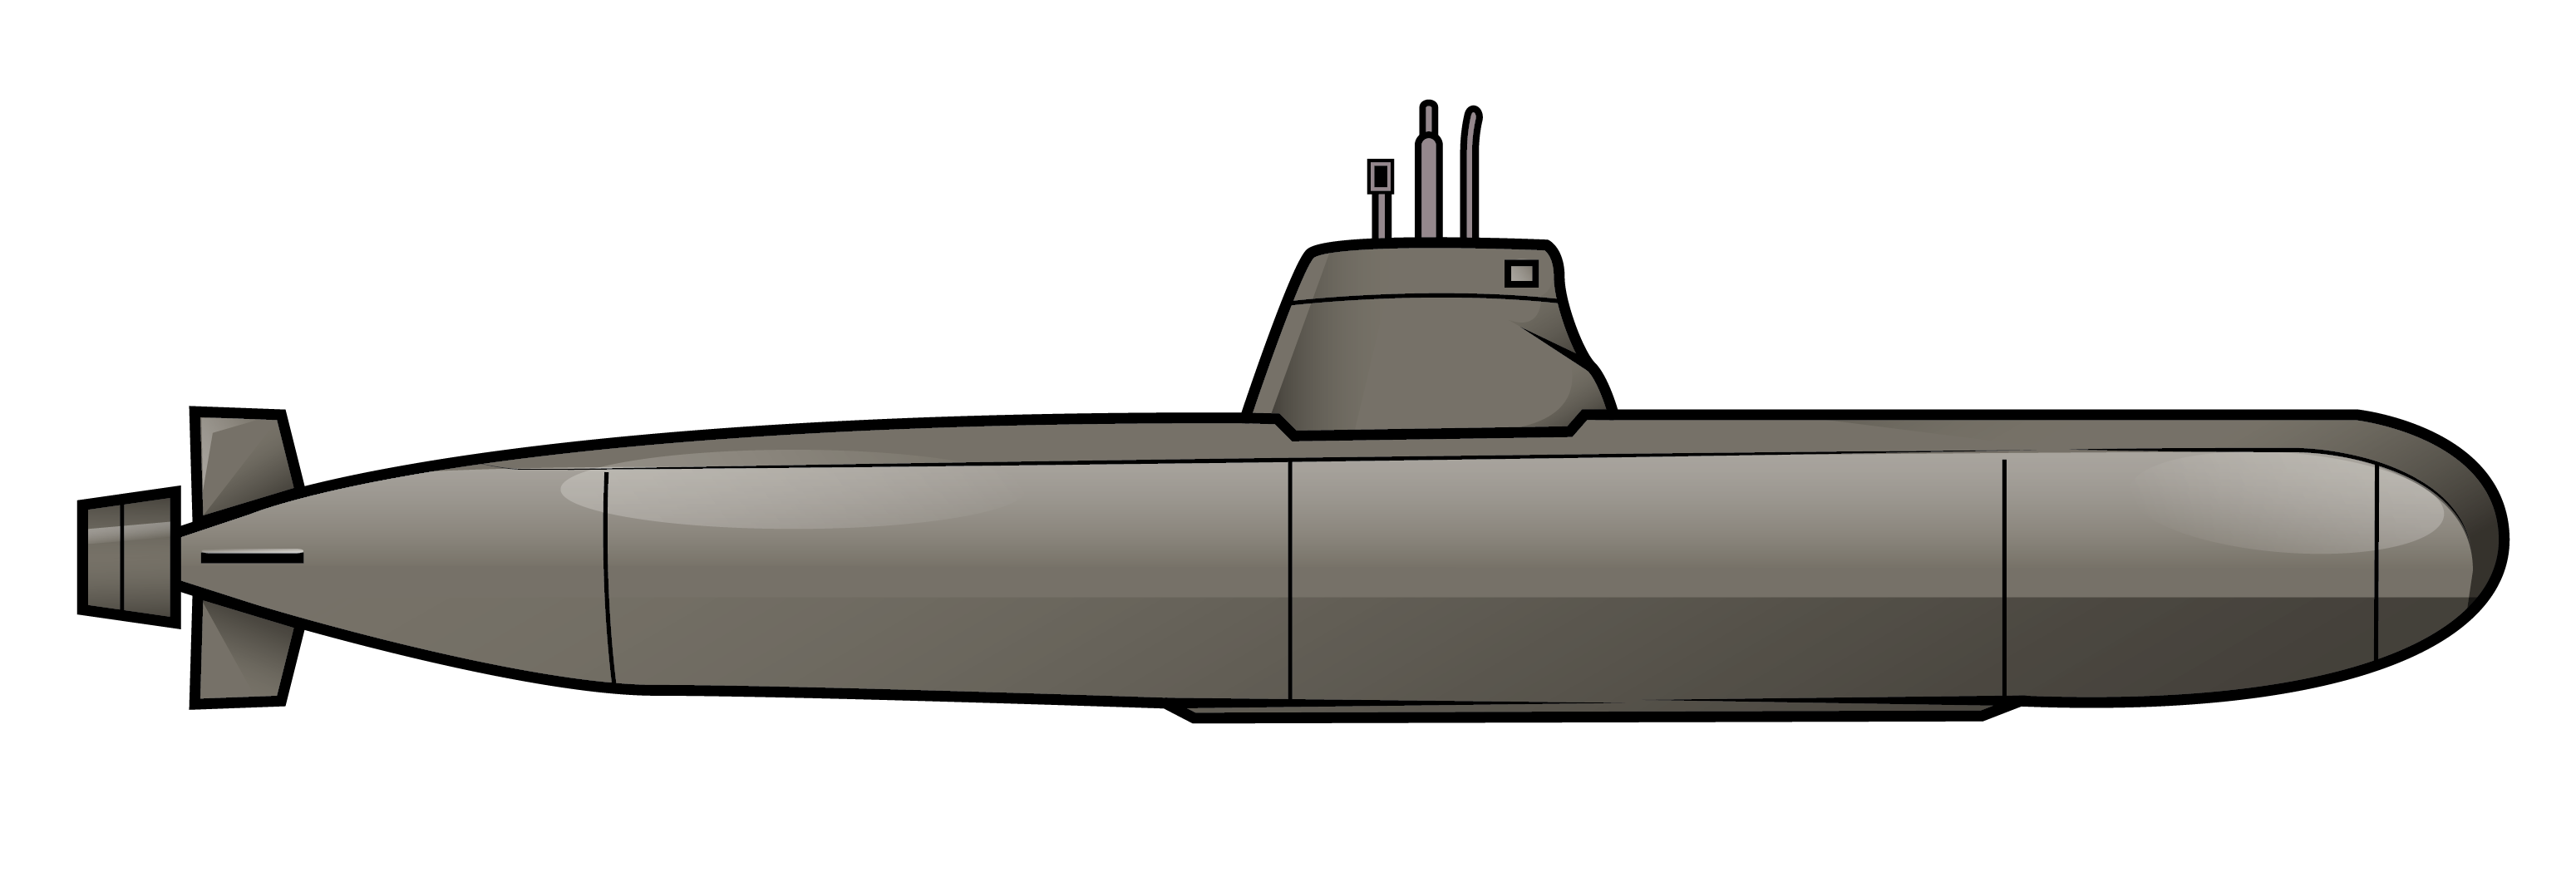 Navy Submarine Clipart - Clipart Kid